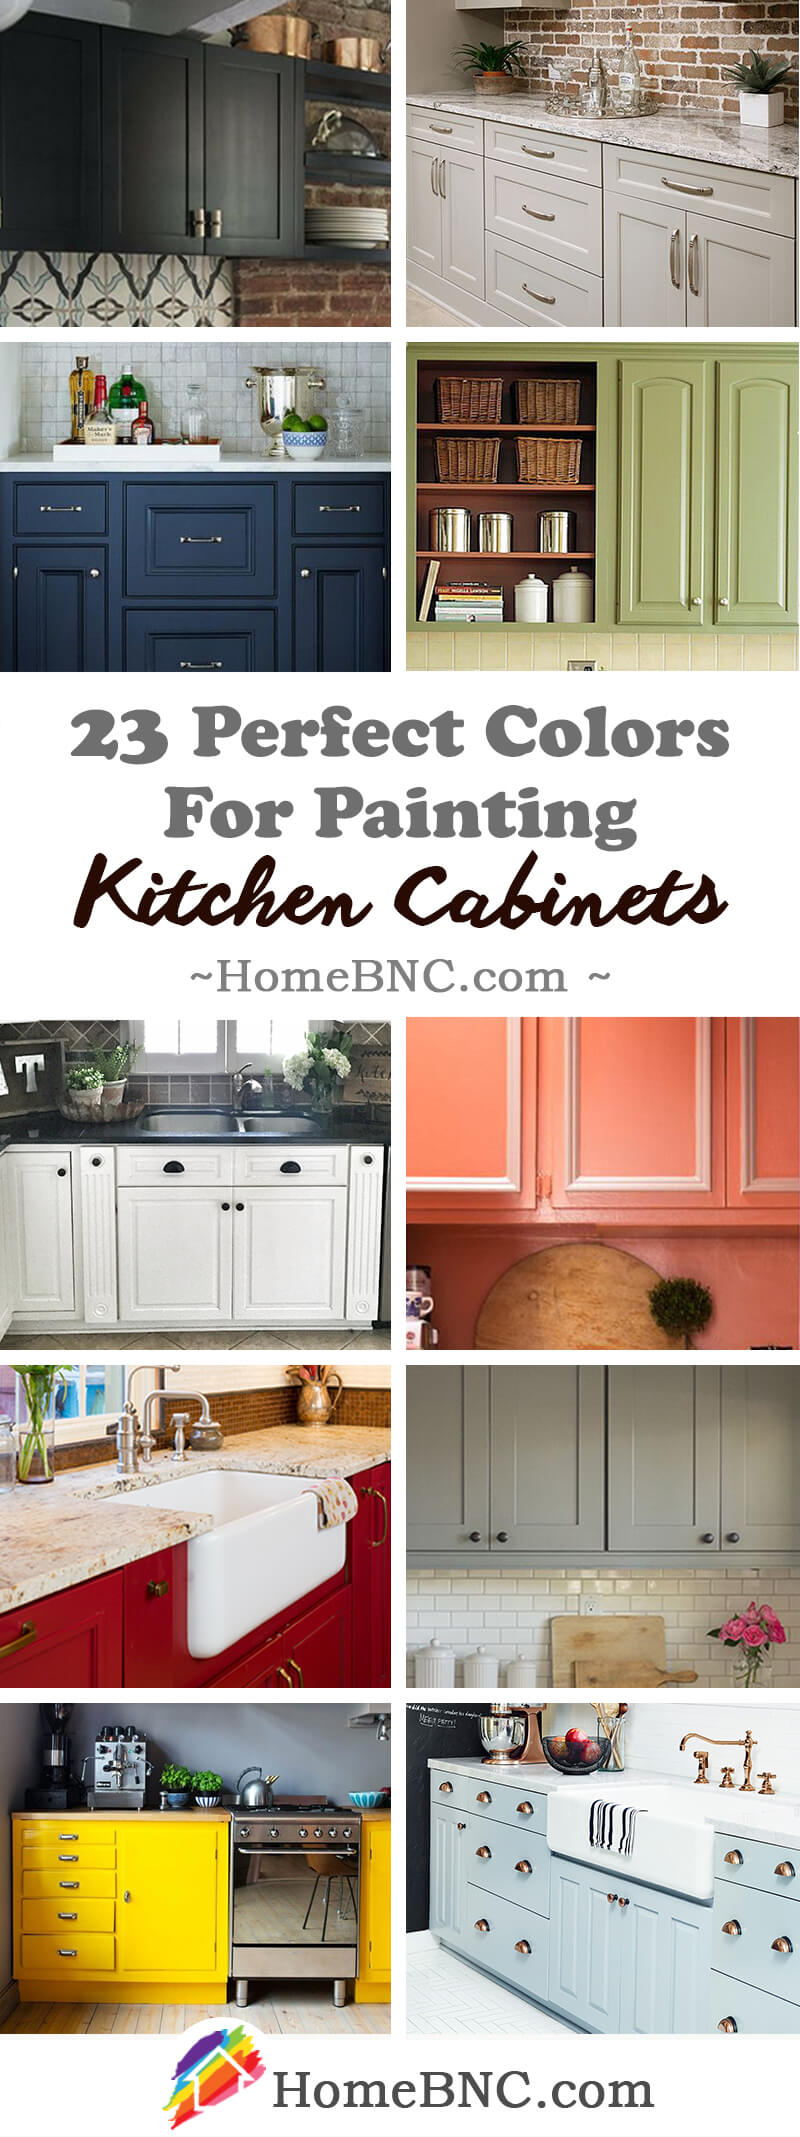 paint colors kitchen backsplash design ideas 23 best cabinets painting color and designs for 2019 perfect decor